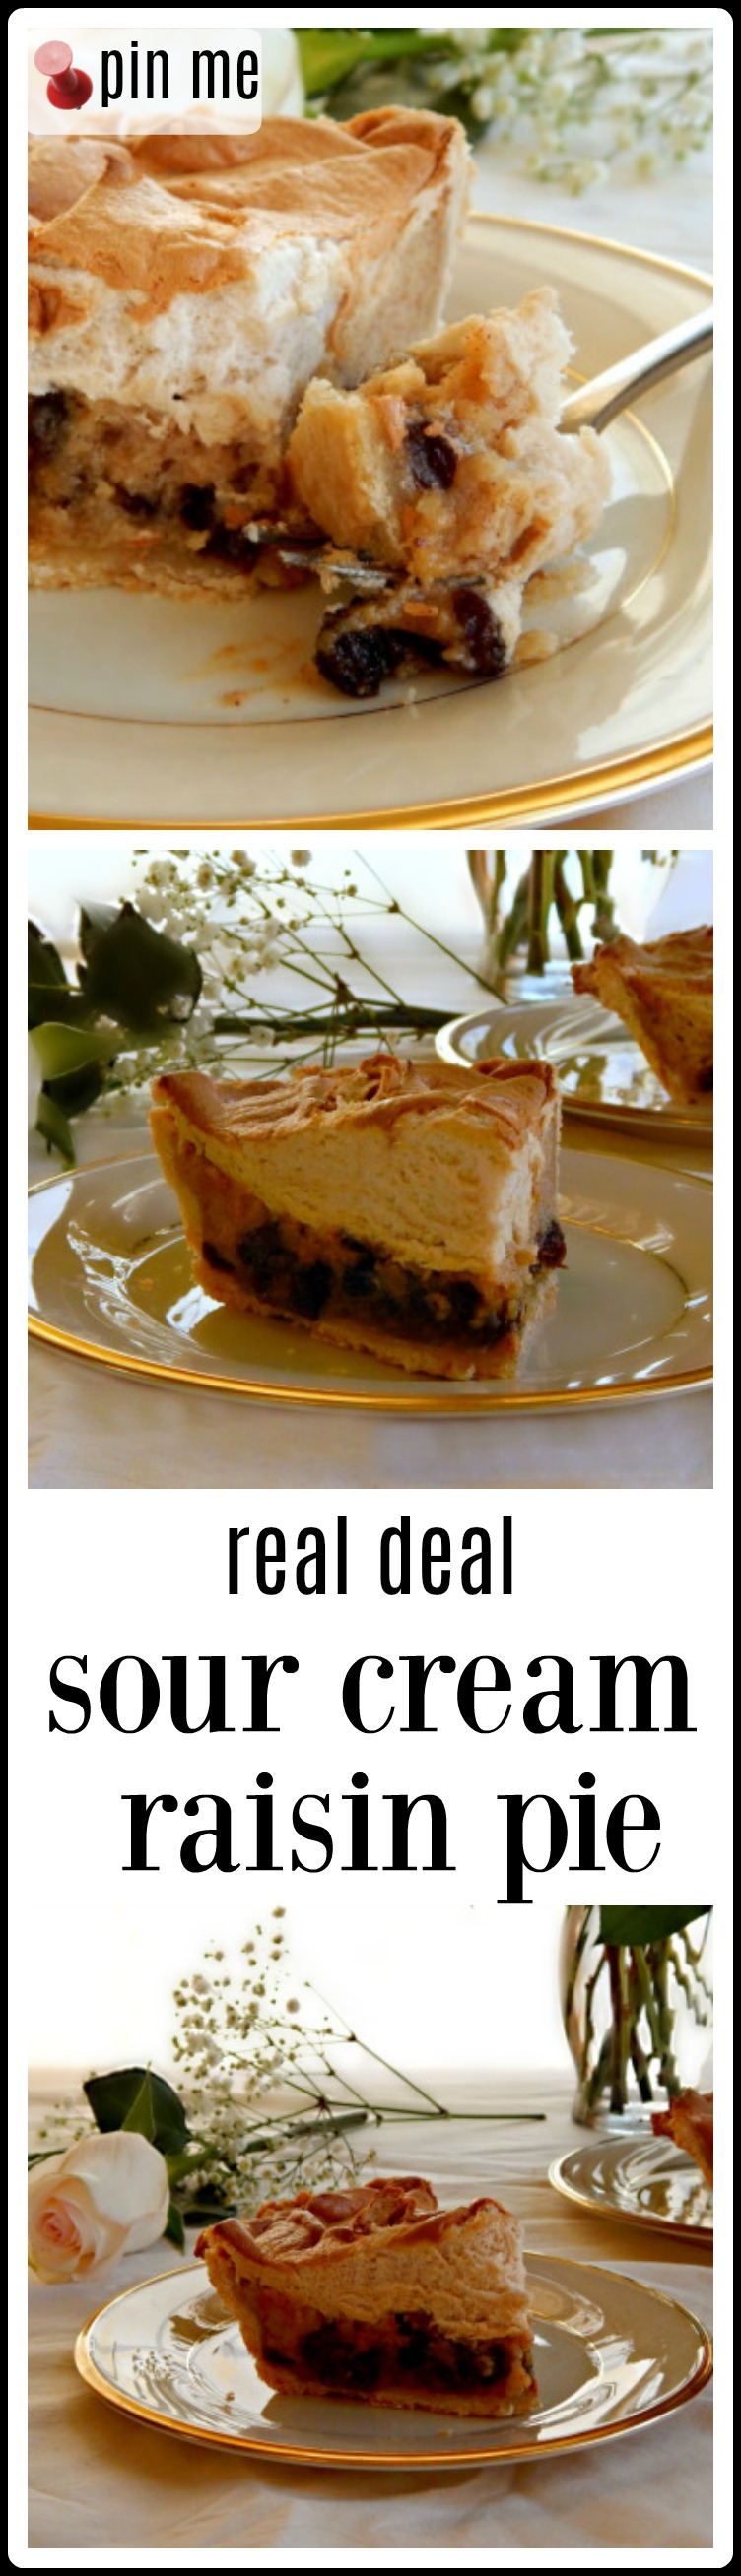 Sour Cream Raisin Pie - A Midwestern Specialty passed down by the German pioneers of the area. It's an easy recipe paired with my Grandma's Pie Crust and a Brown Sugar Meringue Topping #SourCreamRaisinPie